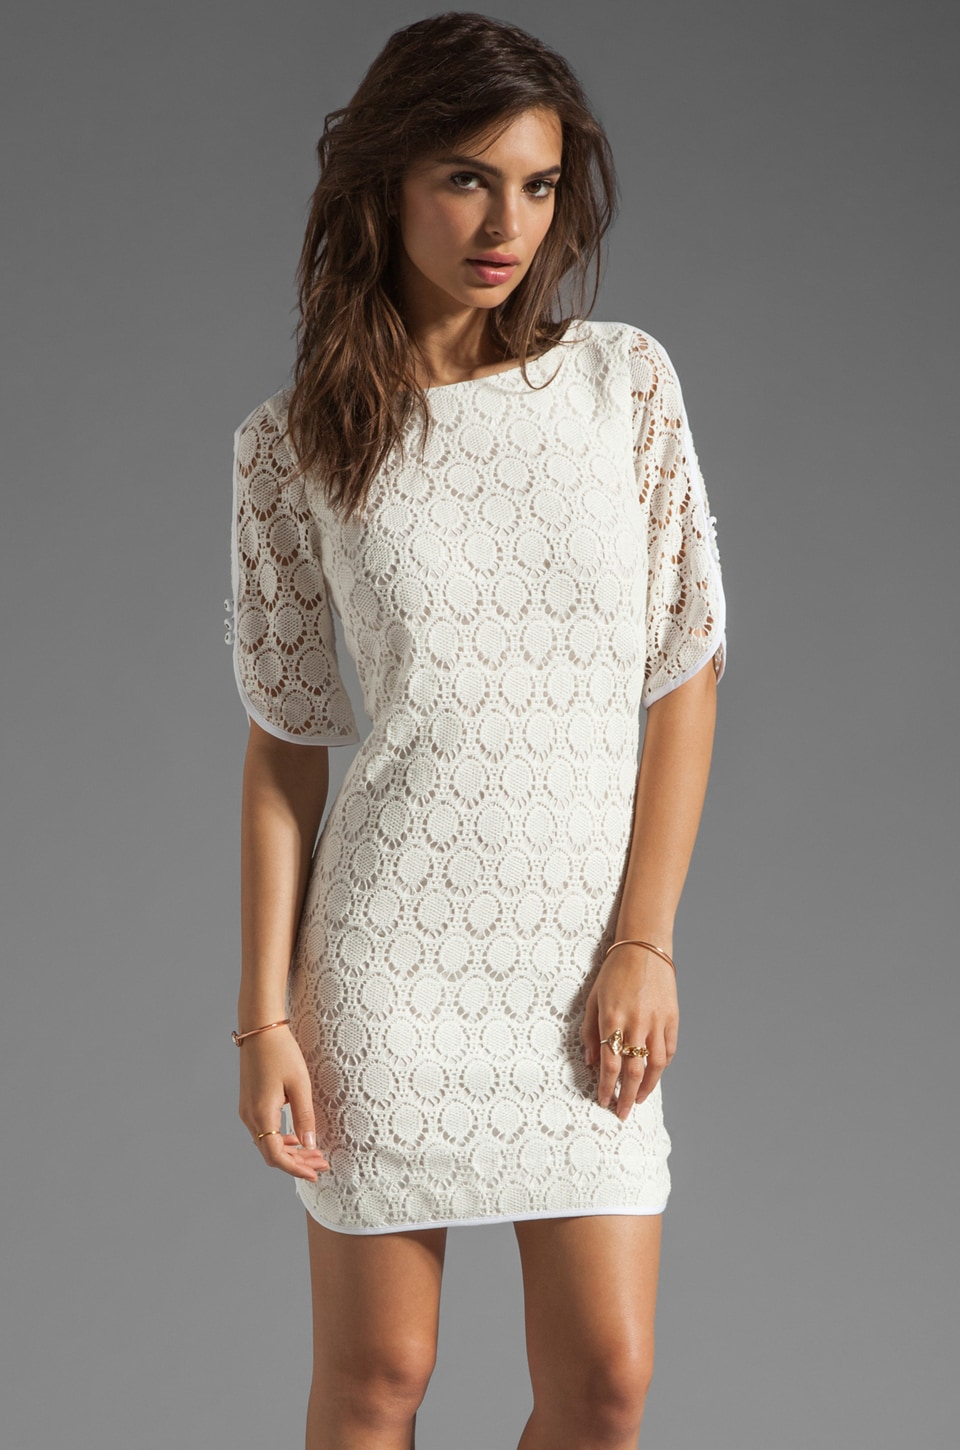 Trina Turk Bonfire Dress in White Wash